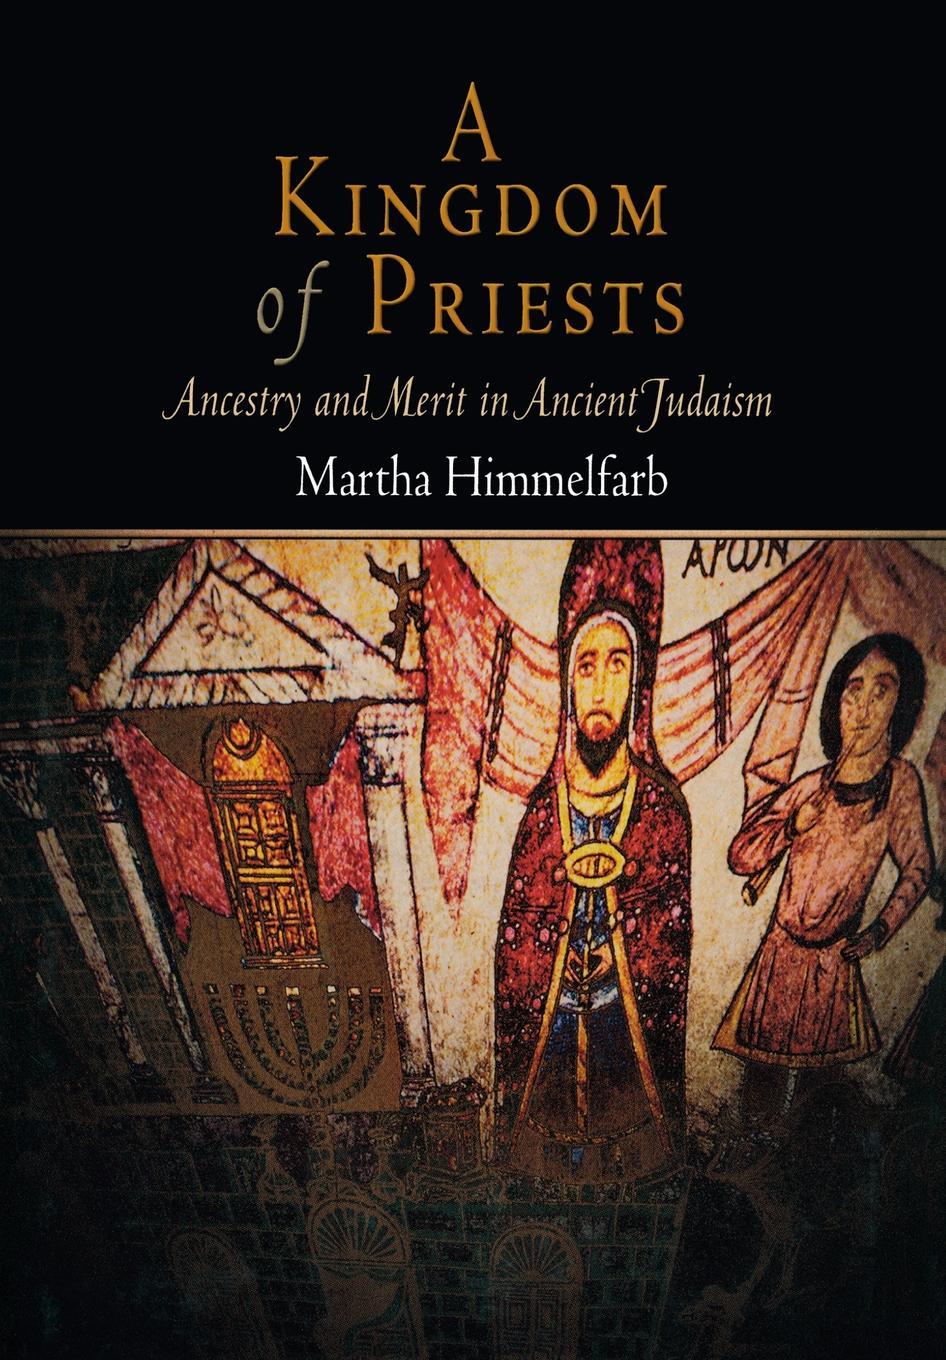 A Kingdom of Priests Ancestry and Merit in Ancient Judaism